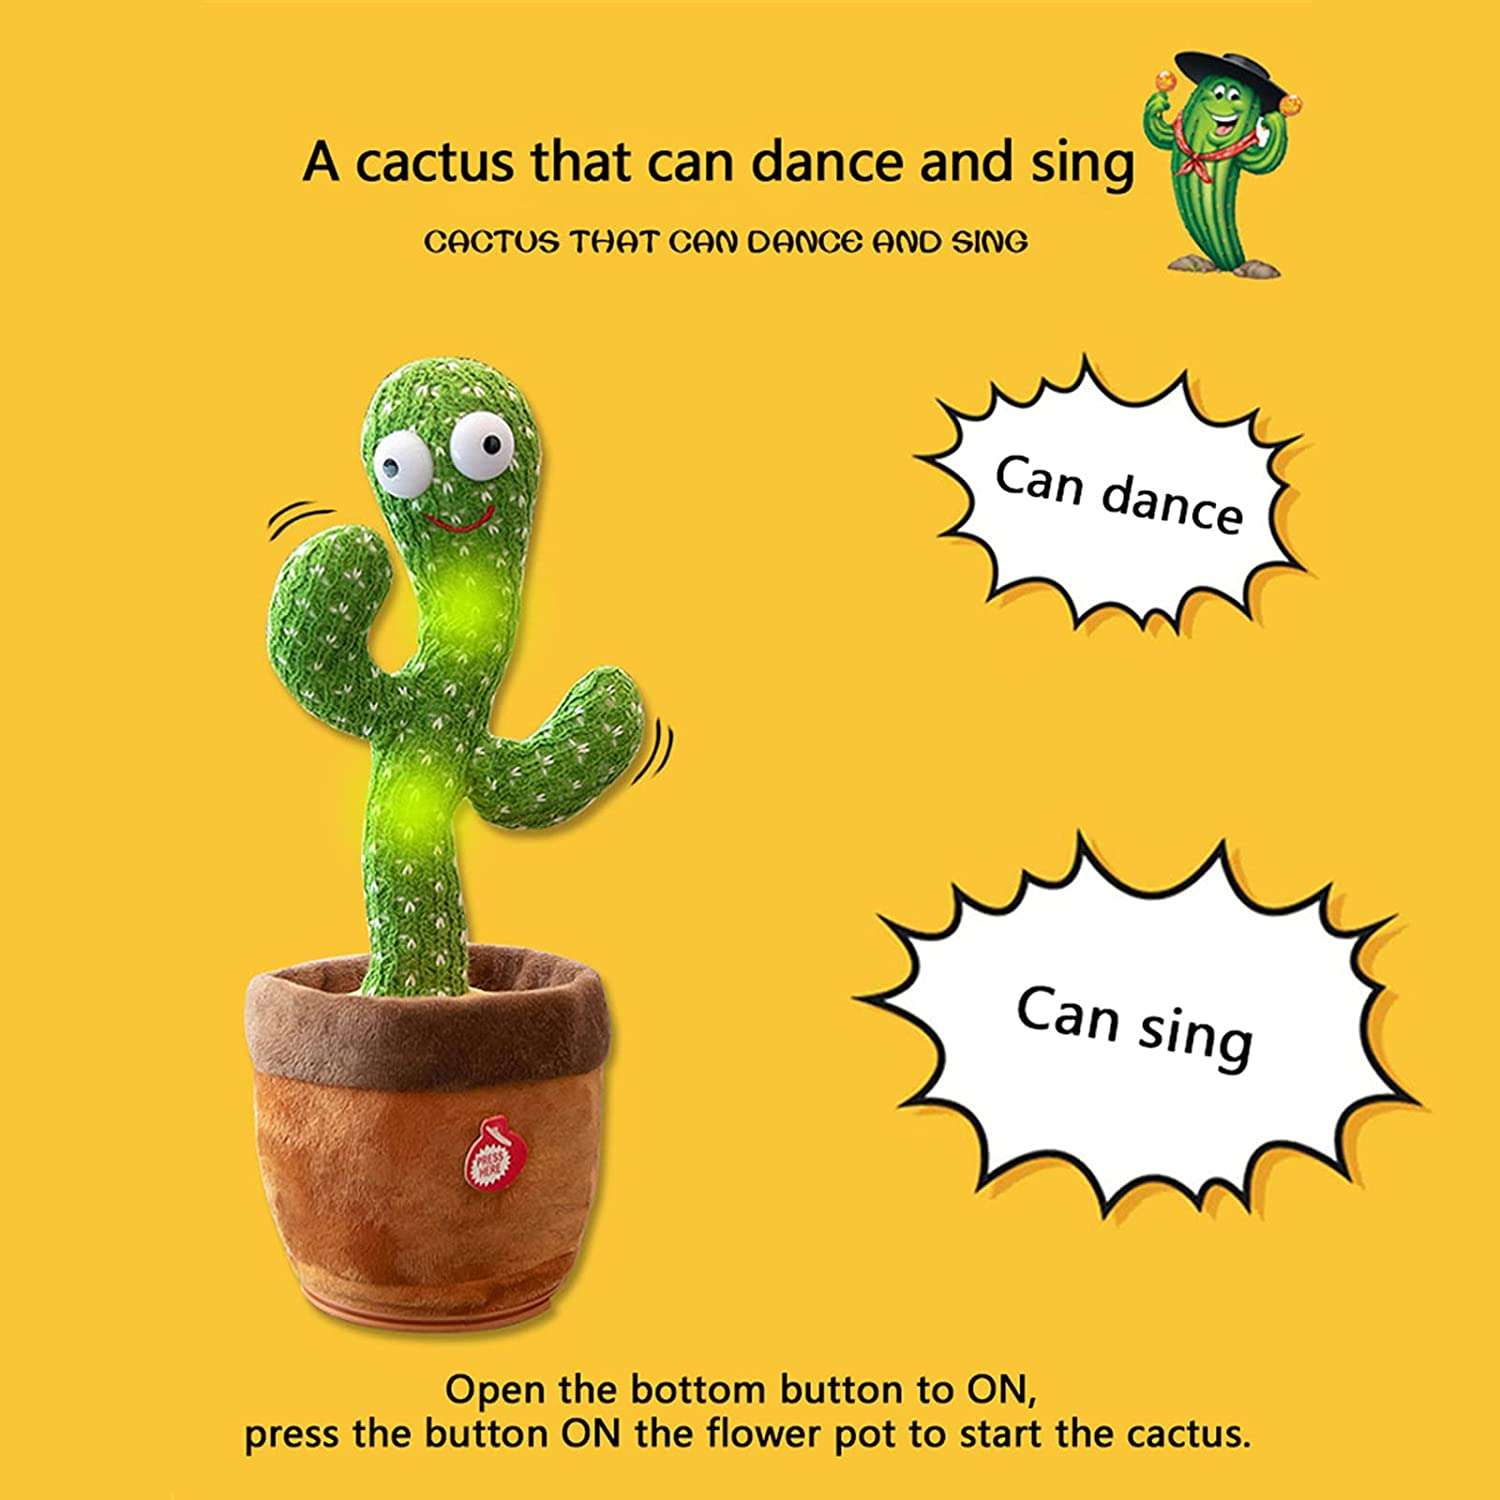 Buy WISMAT Dancing Cactus Toy - 120 Songs Singing, Talking, Record &  Repeating What You say Electric Cactus, Wiggle Mimicking Parrot Sunny Cactus  Plush Toy, LED Light for Home Decor & Babies